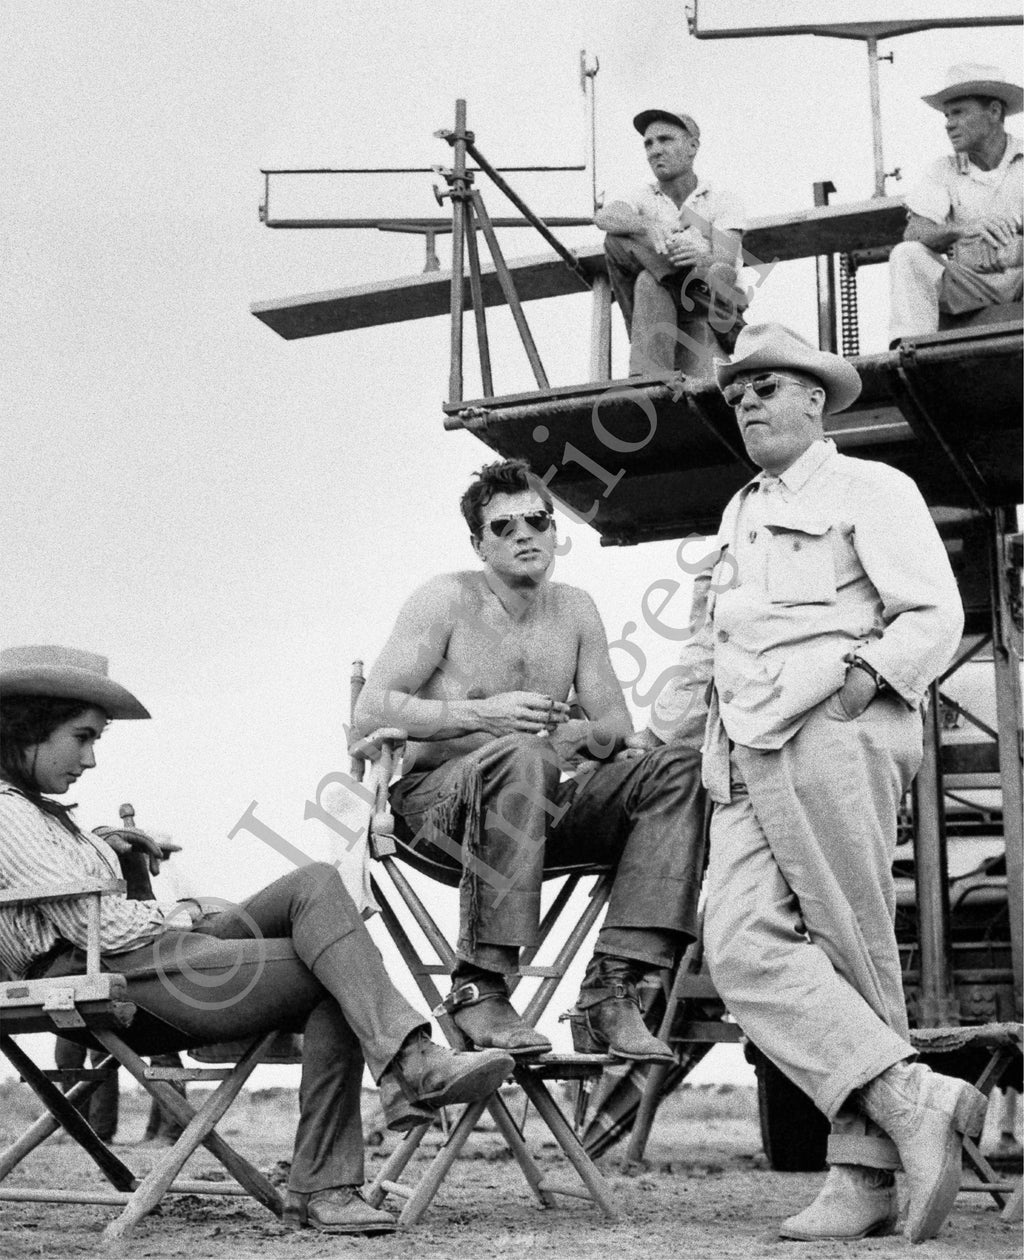 Shirtless Rock Hudson on the set of Giant with Elizabeth Taylor and Sir George Stevens (0029)